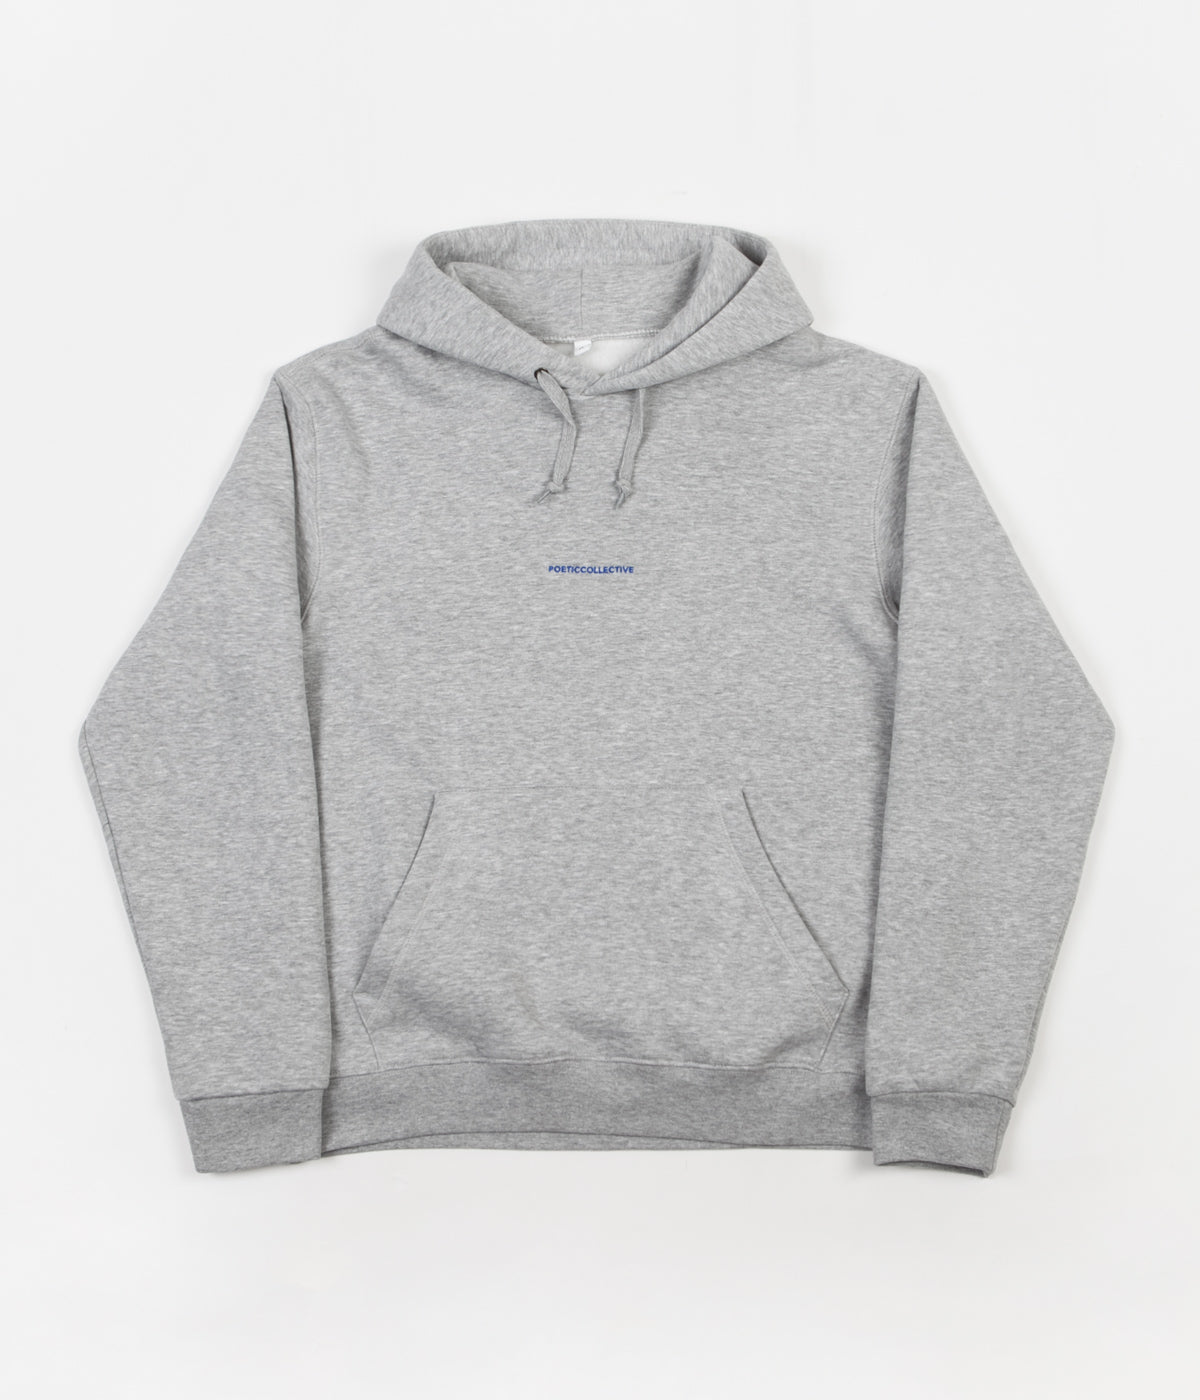 Poetic Collective Paraphrase Hoodie - Grey